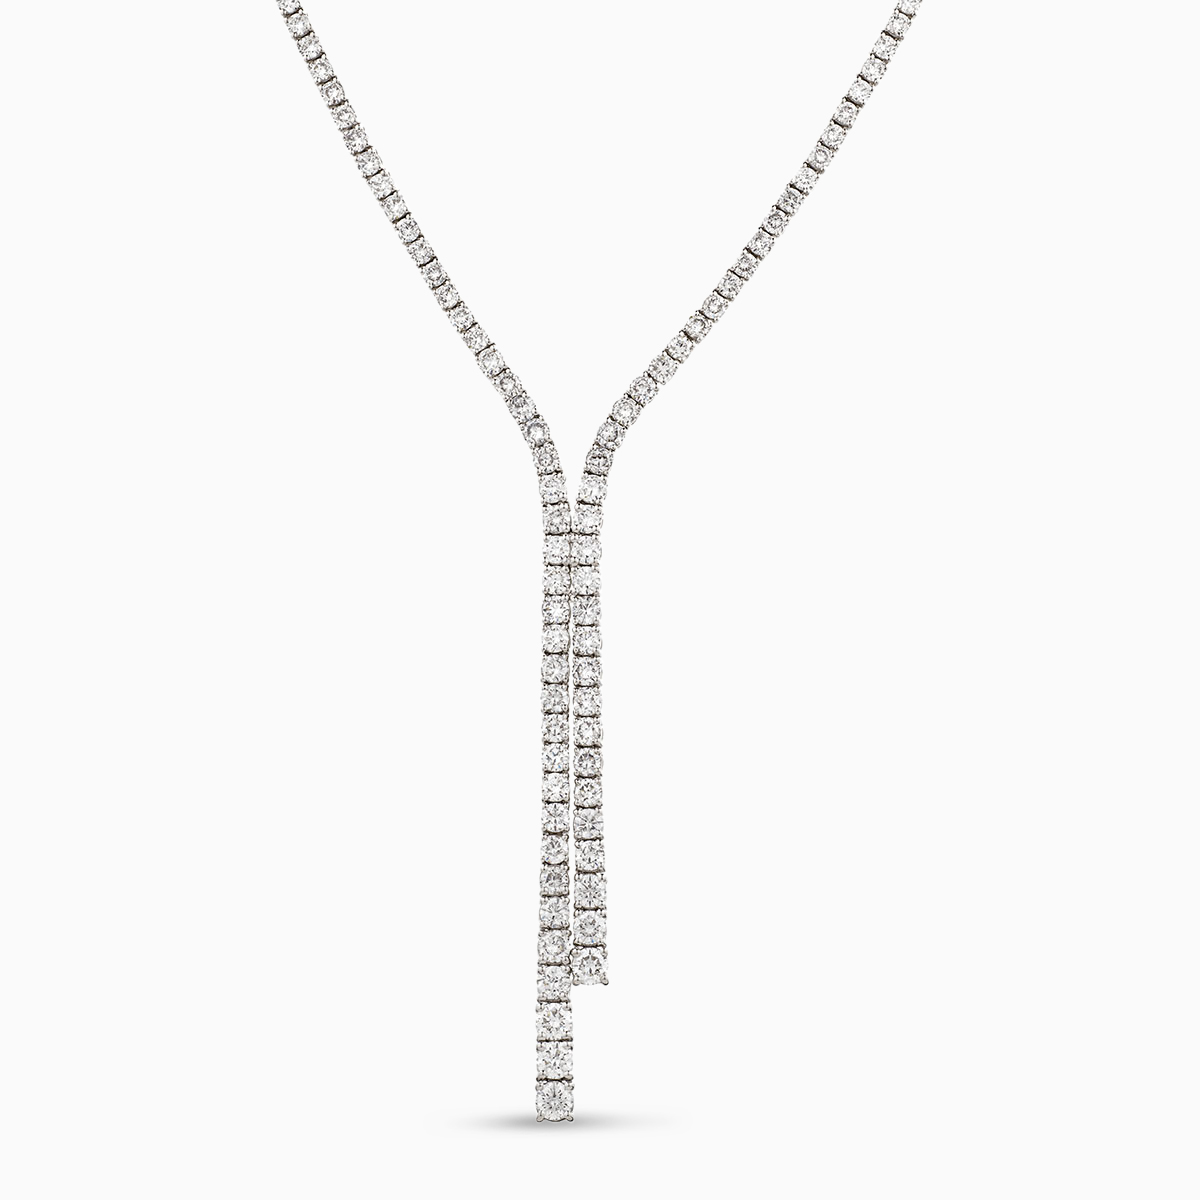 Diamond Pendants and Necklaces